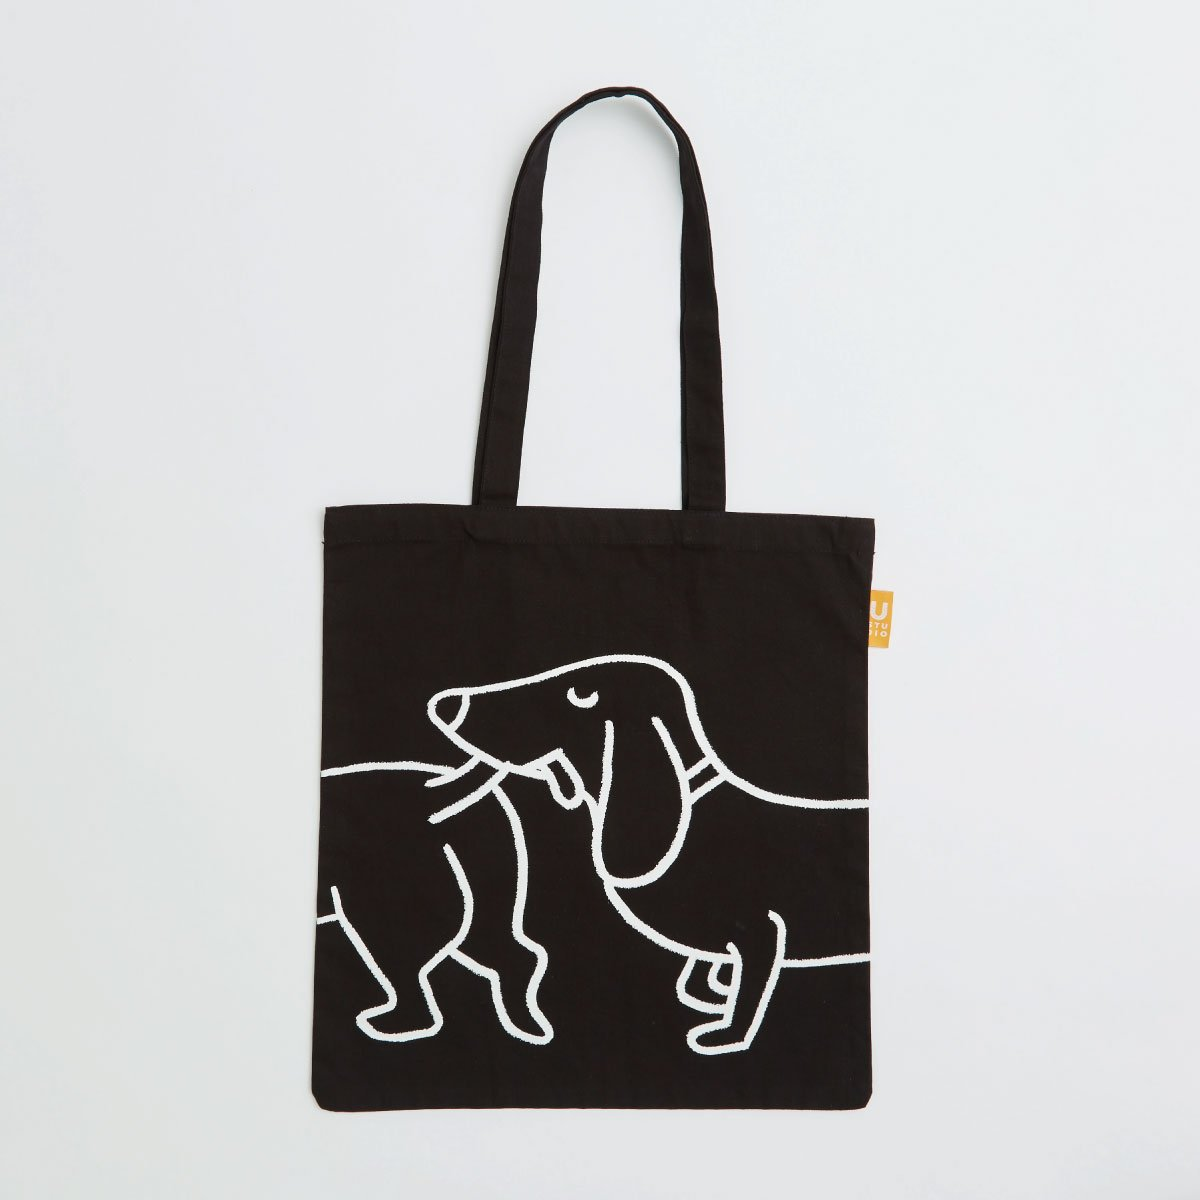 spacious cotton bag with long handles and gusset